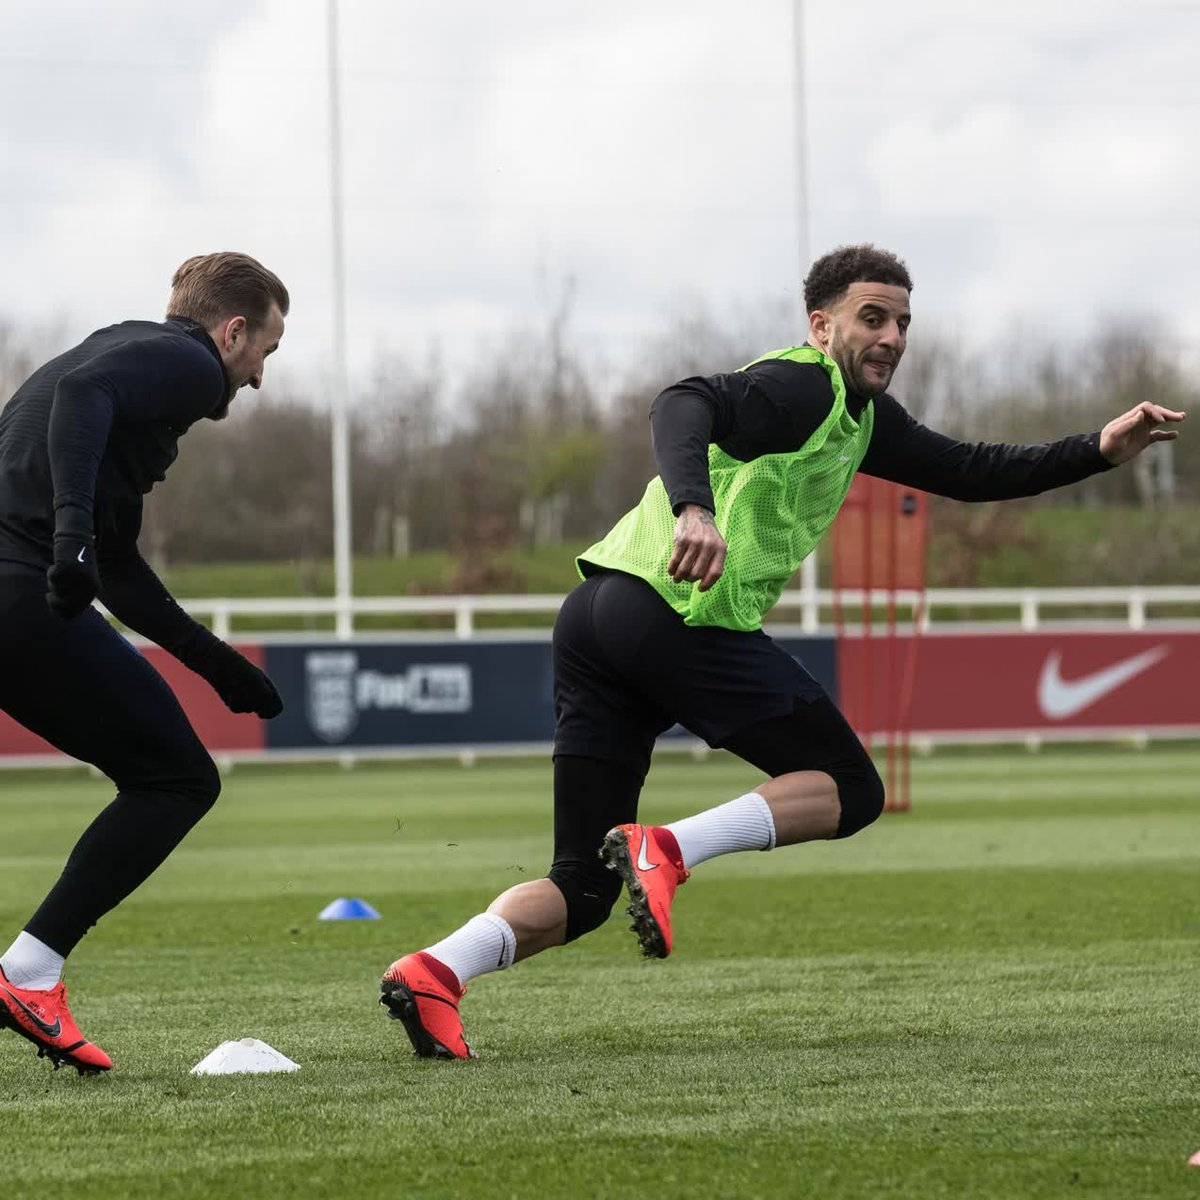 Catch me if you can... ⚡  Check out the latest from the #ThreeLions camp with Inside Training!  👉 https://youtu.be/a0-unG2l3Lo 👈